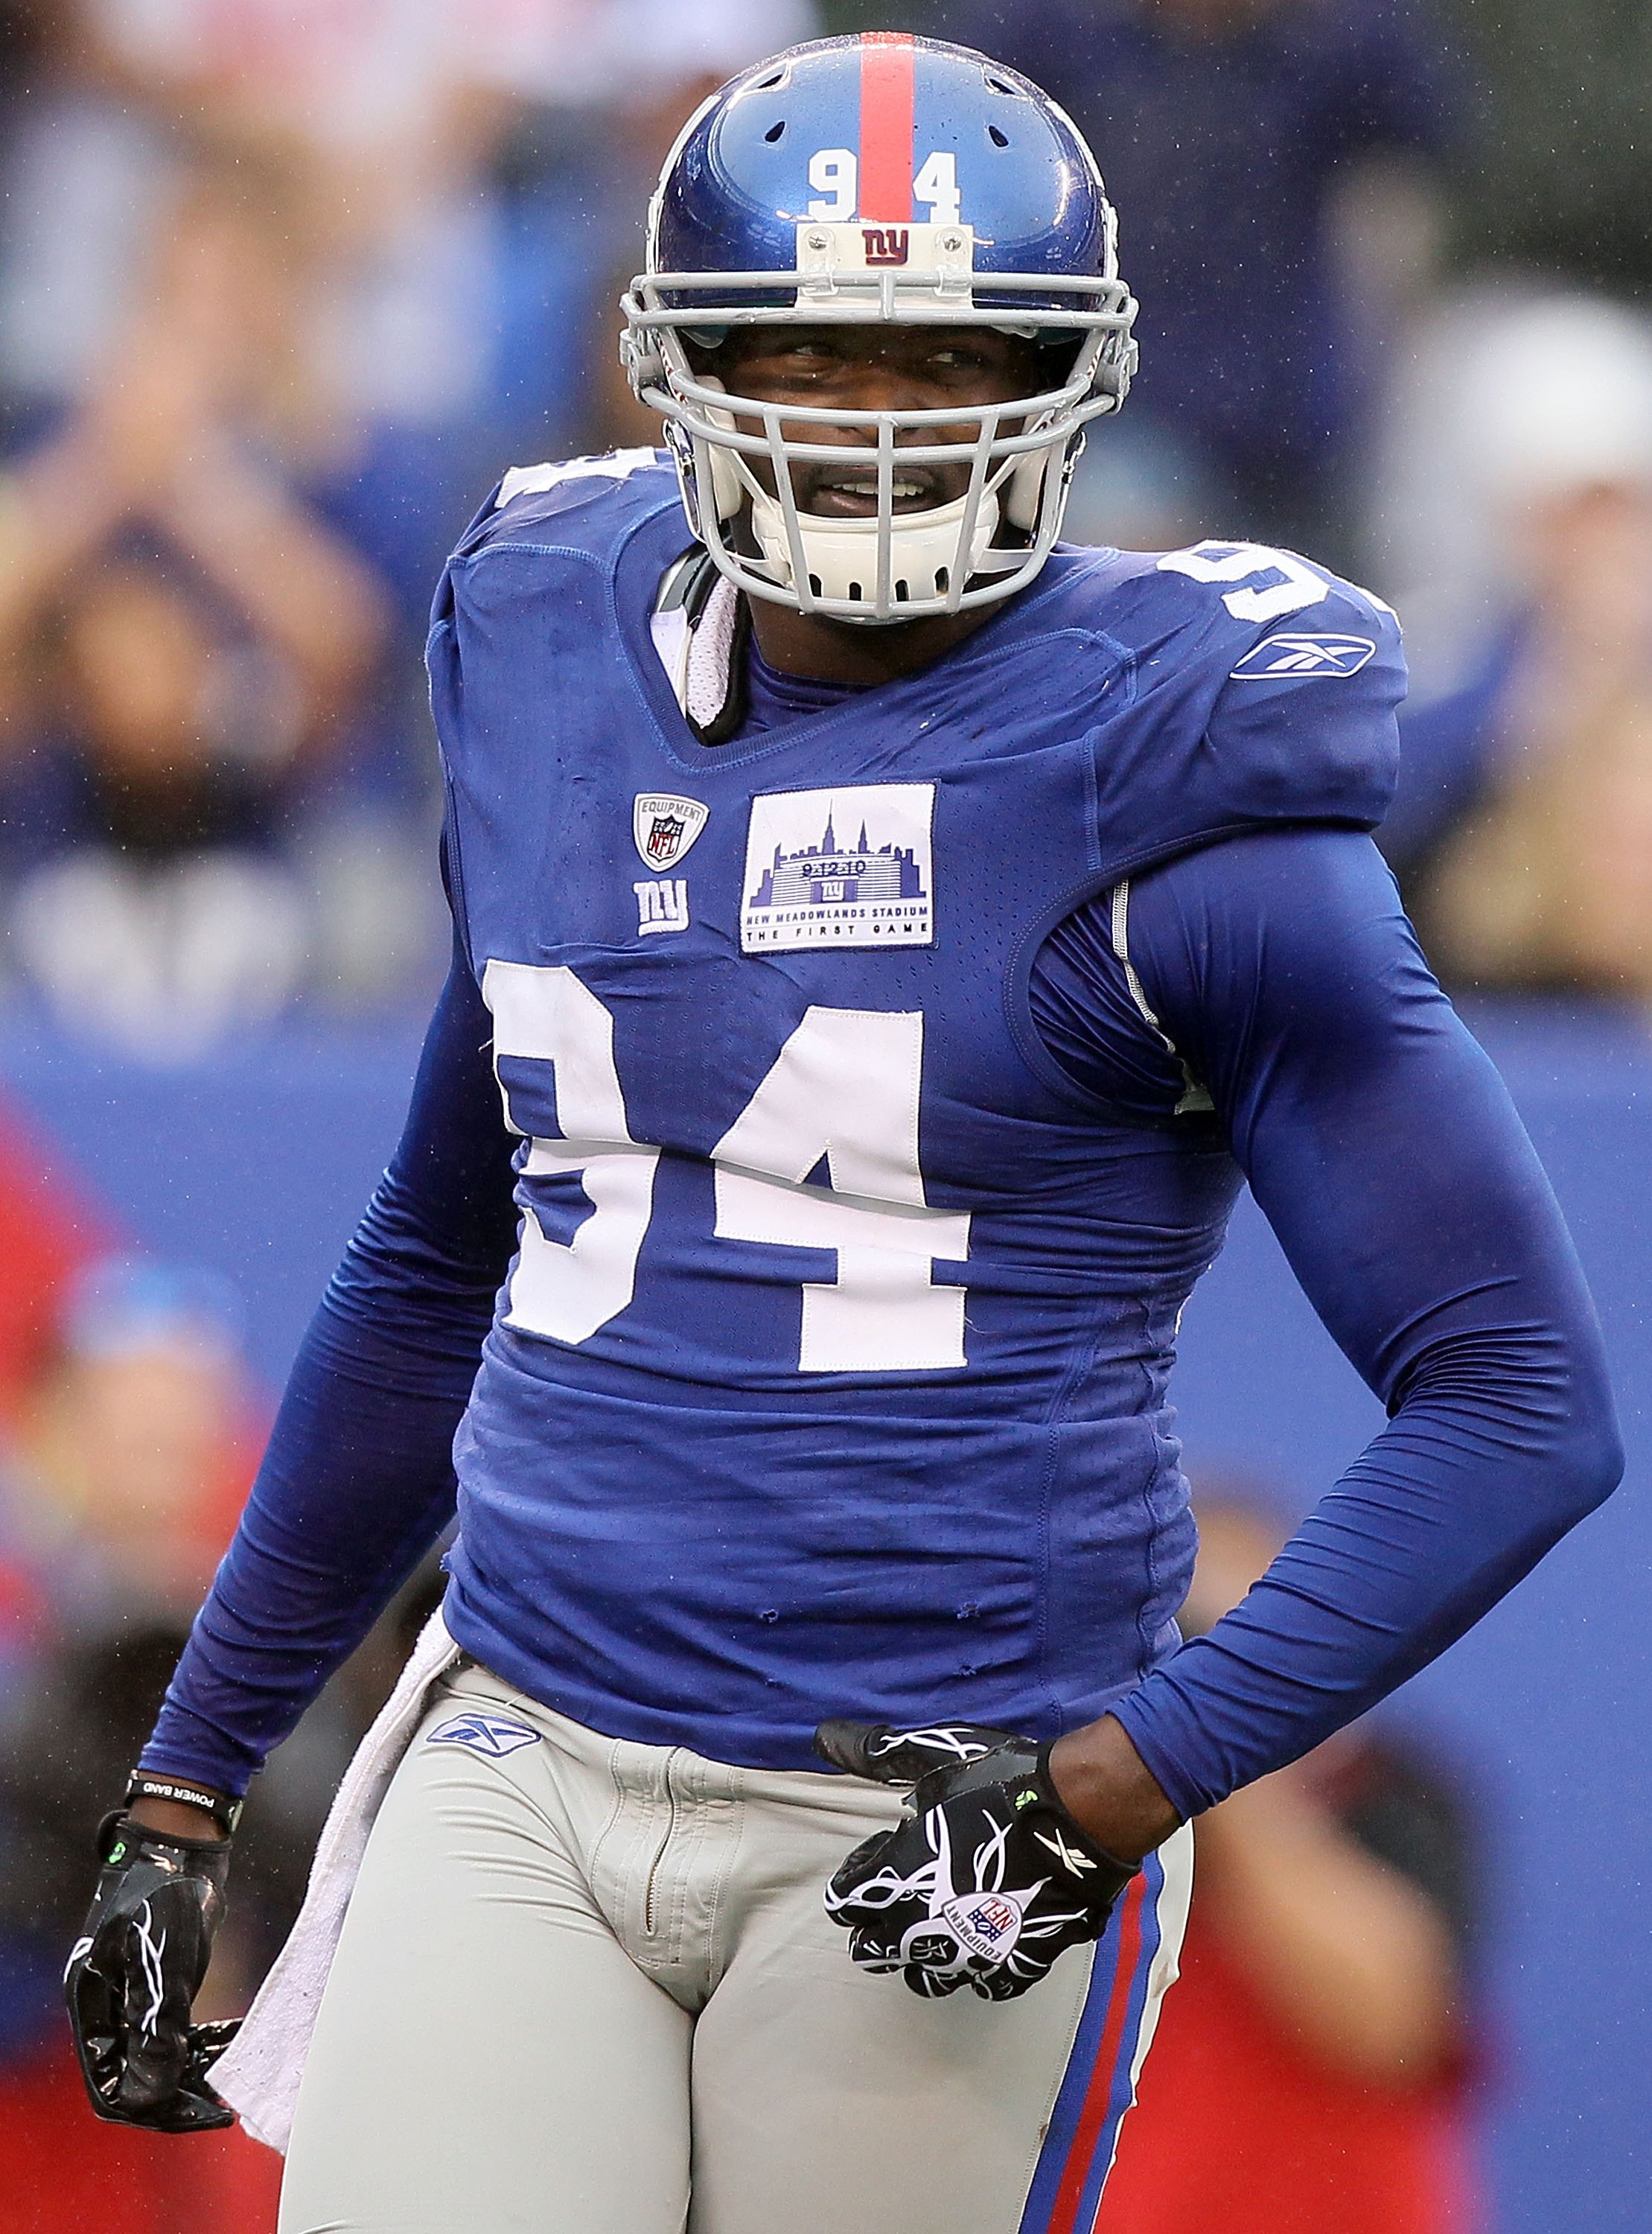 EAST RUTHERFORD, NJ - SEPTEMBER 12:  Mathias Kiwanuka #94 of the New York Giants looks on against the Carolina Panthers on September 12, 2010 at the New Meadowlands Stadium in East Rutherford, New Jersey. The Giants defeated the Panthers 31-18.  (Photo by